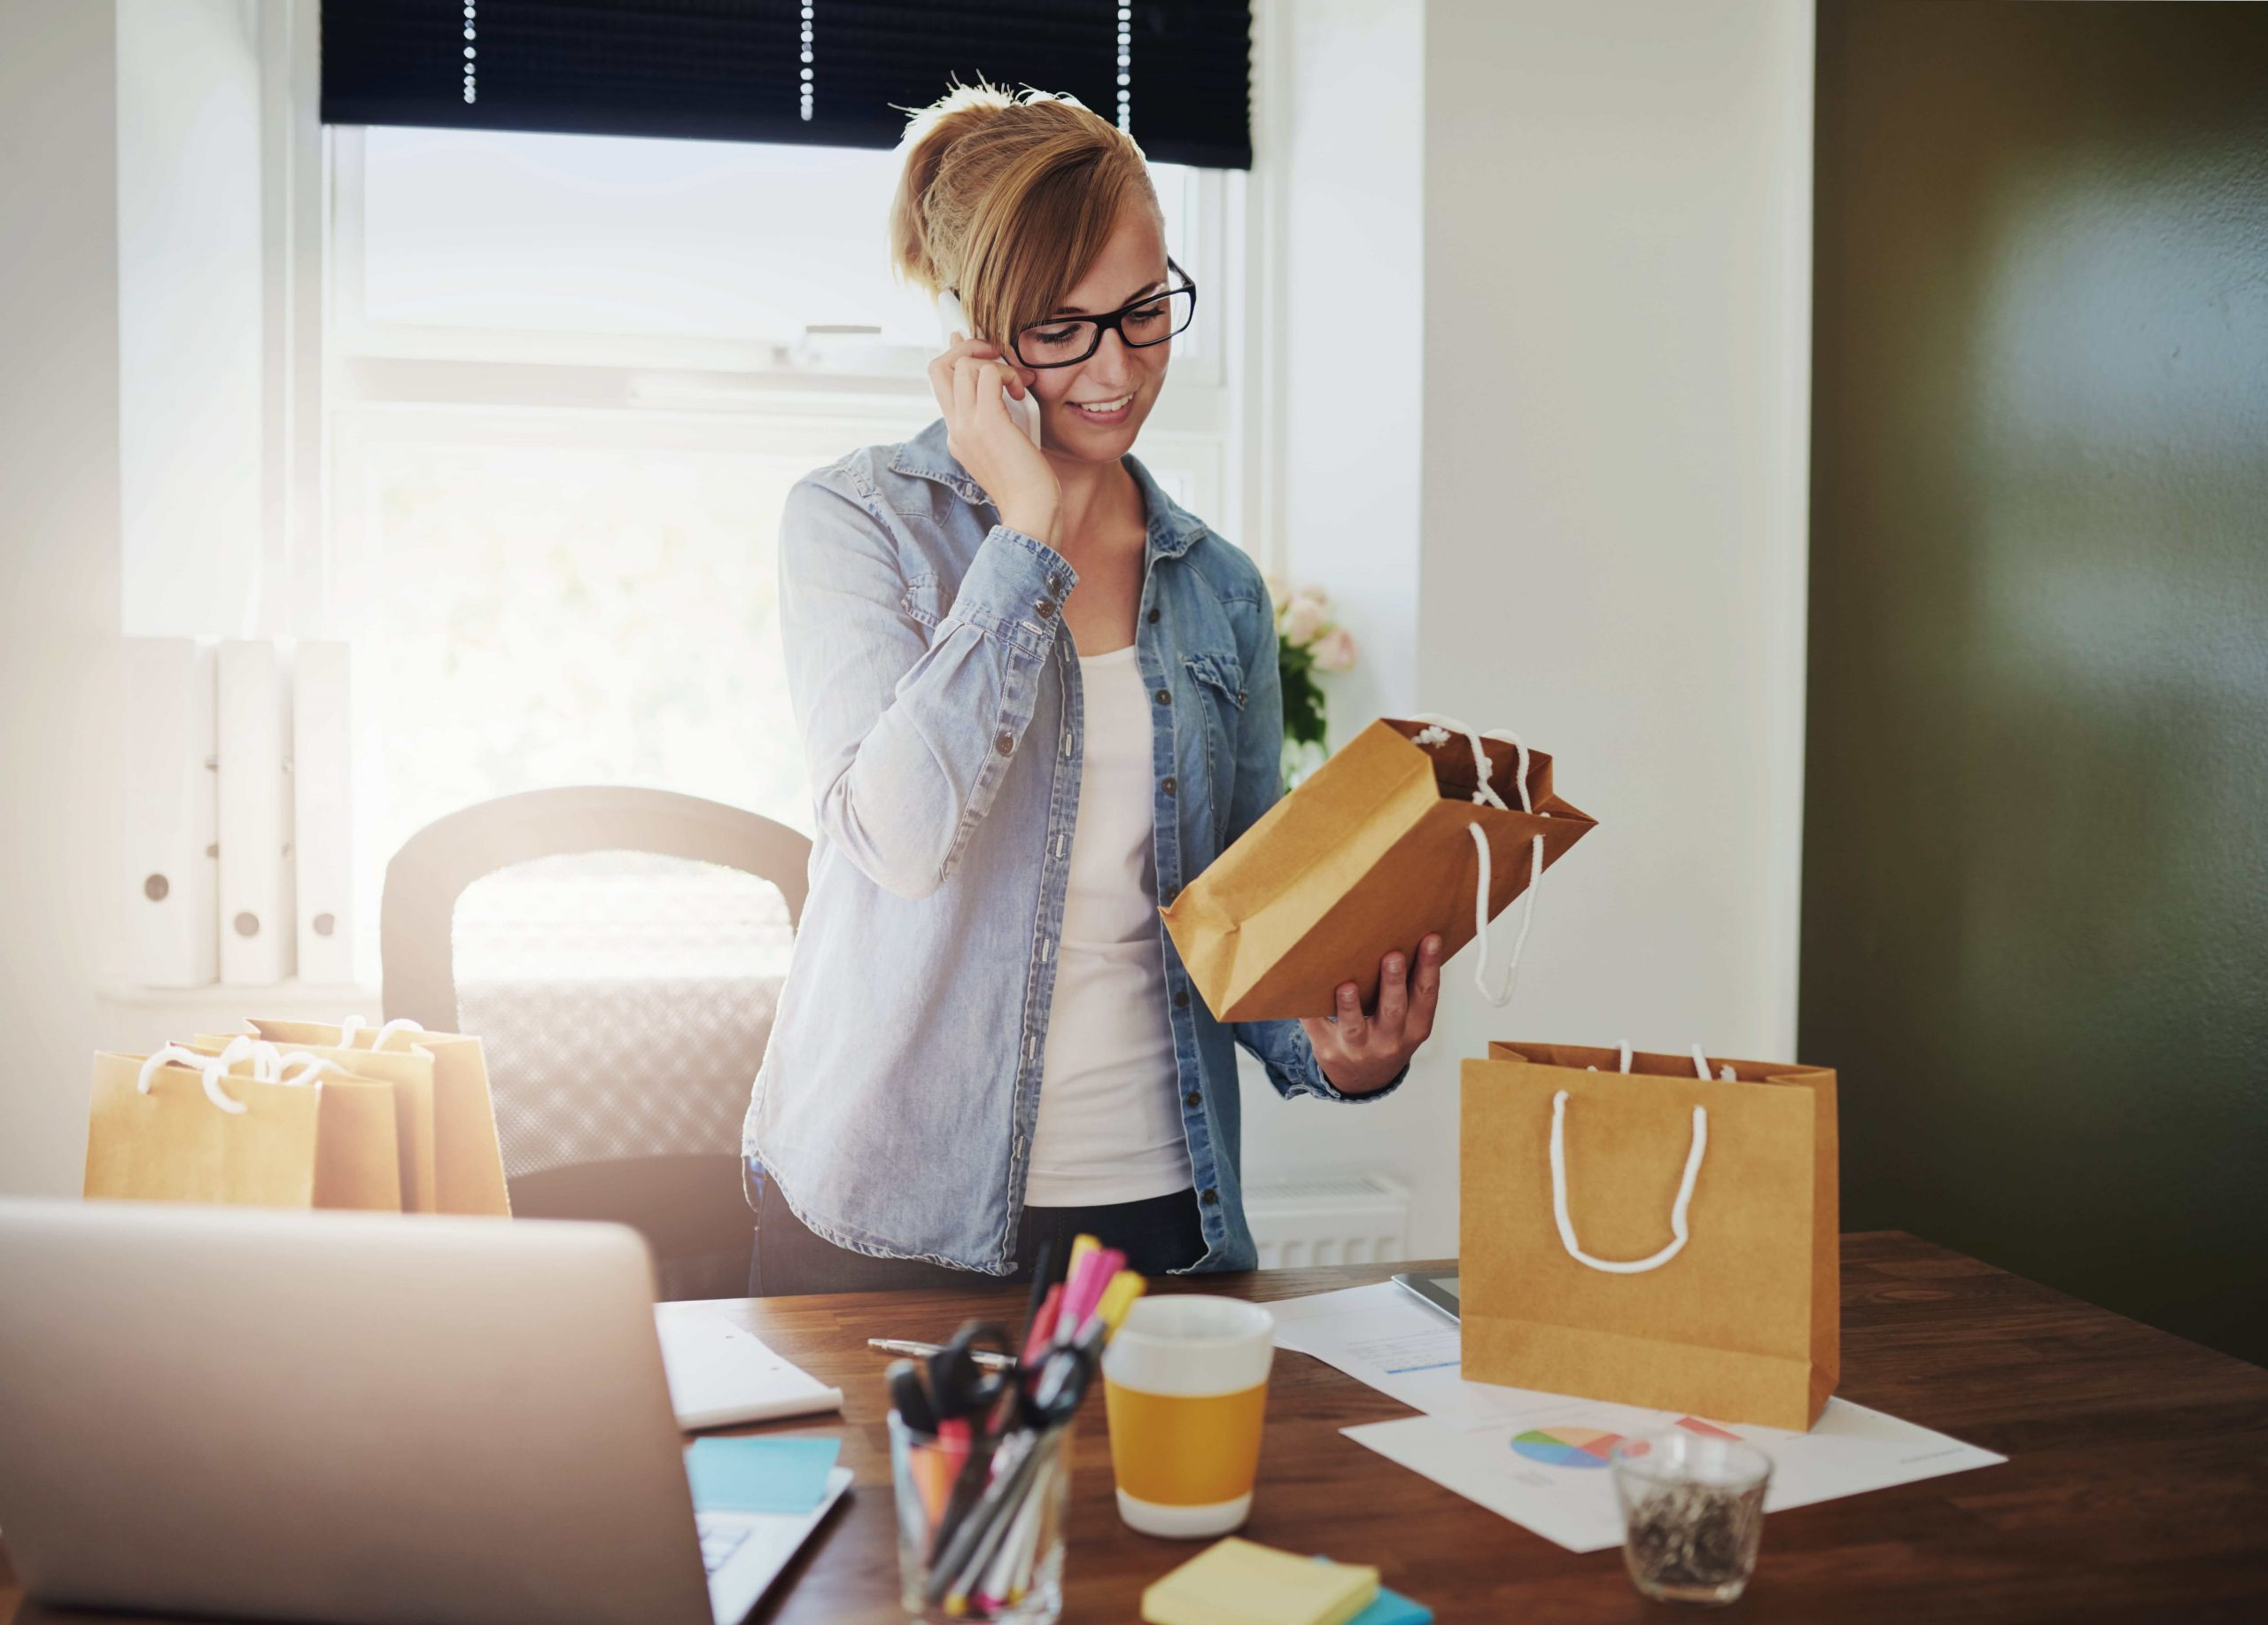 motivated-businesswoman-placing-orders-on-a-phone-PPXYWE7